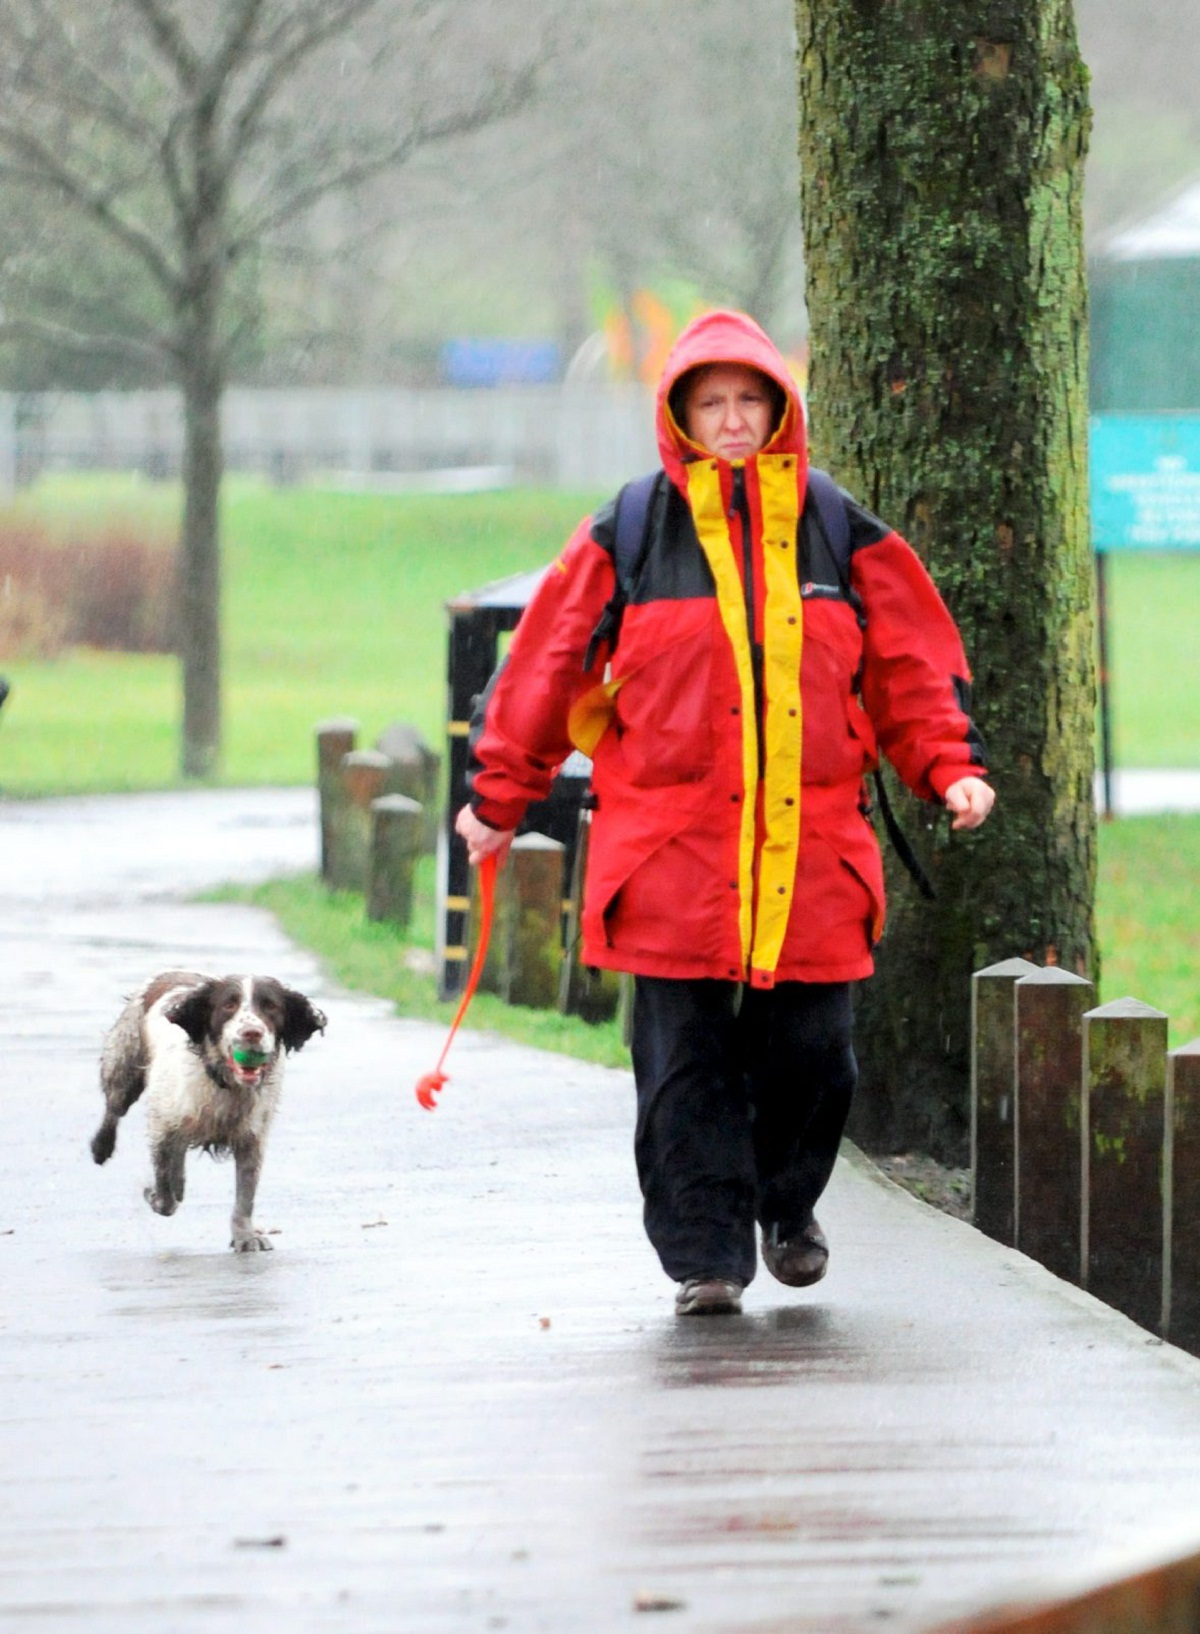 Blackburn with Darwen dog owners could face legal sanctions